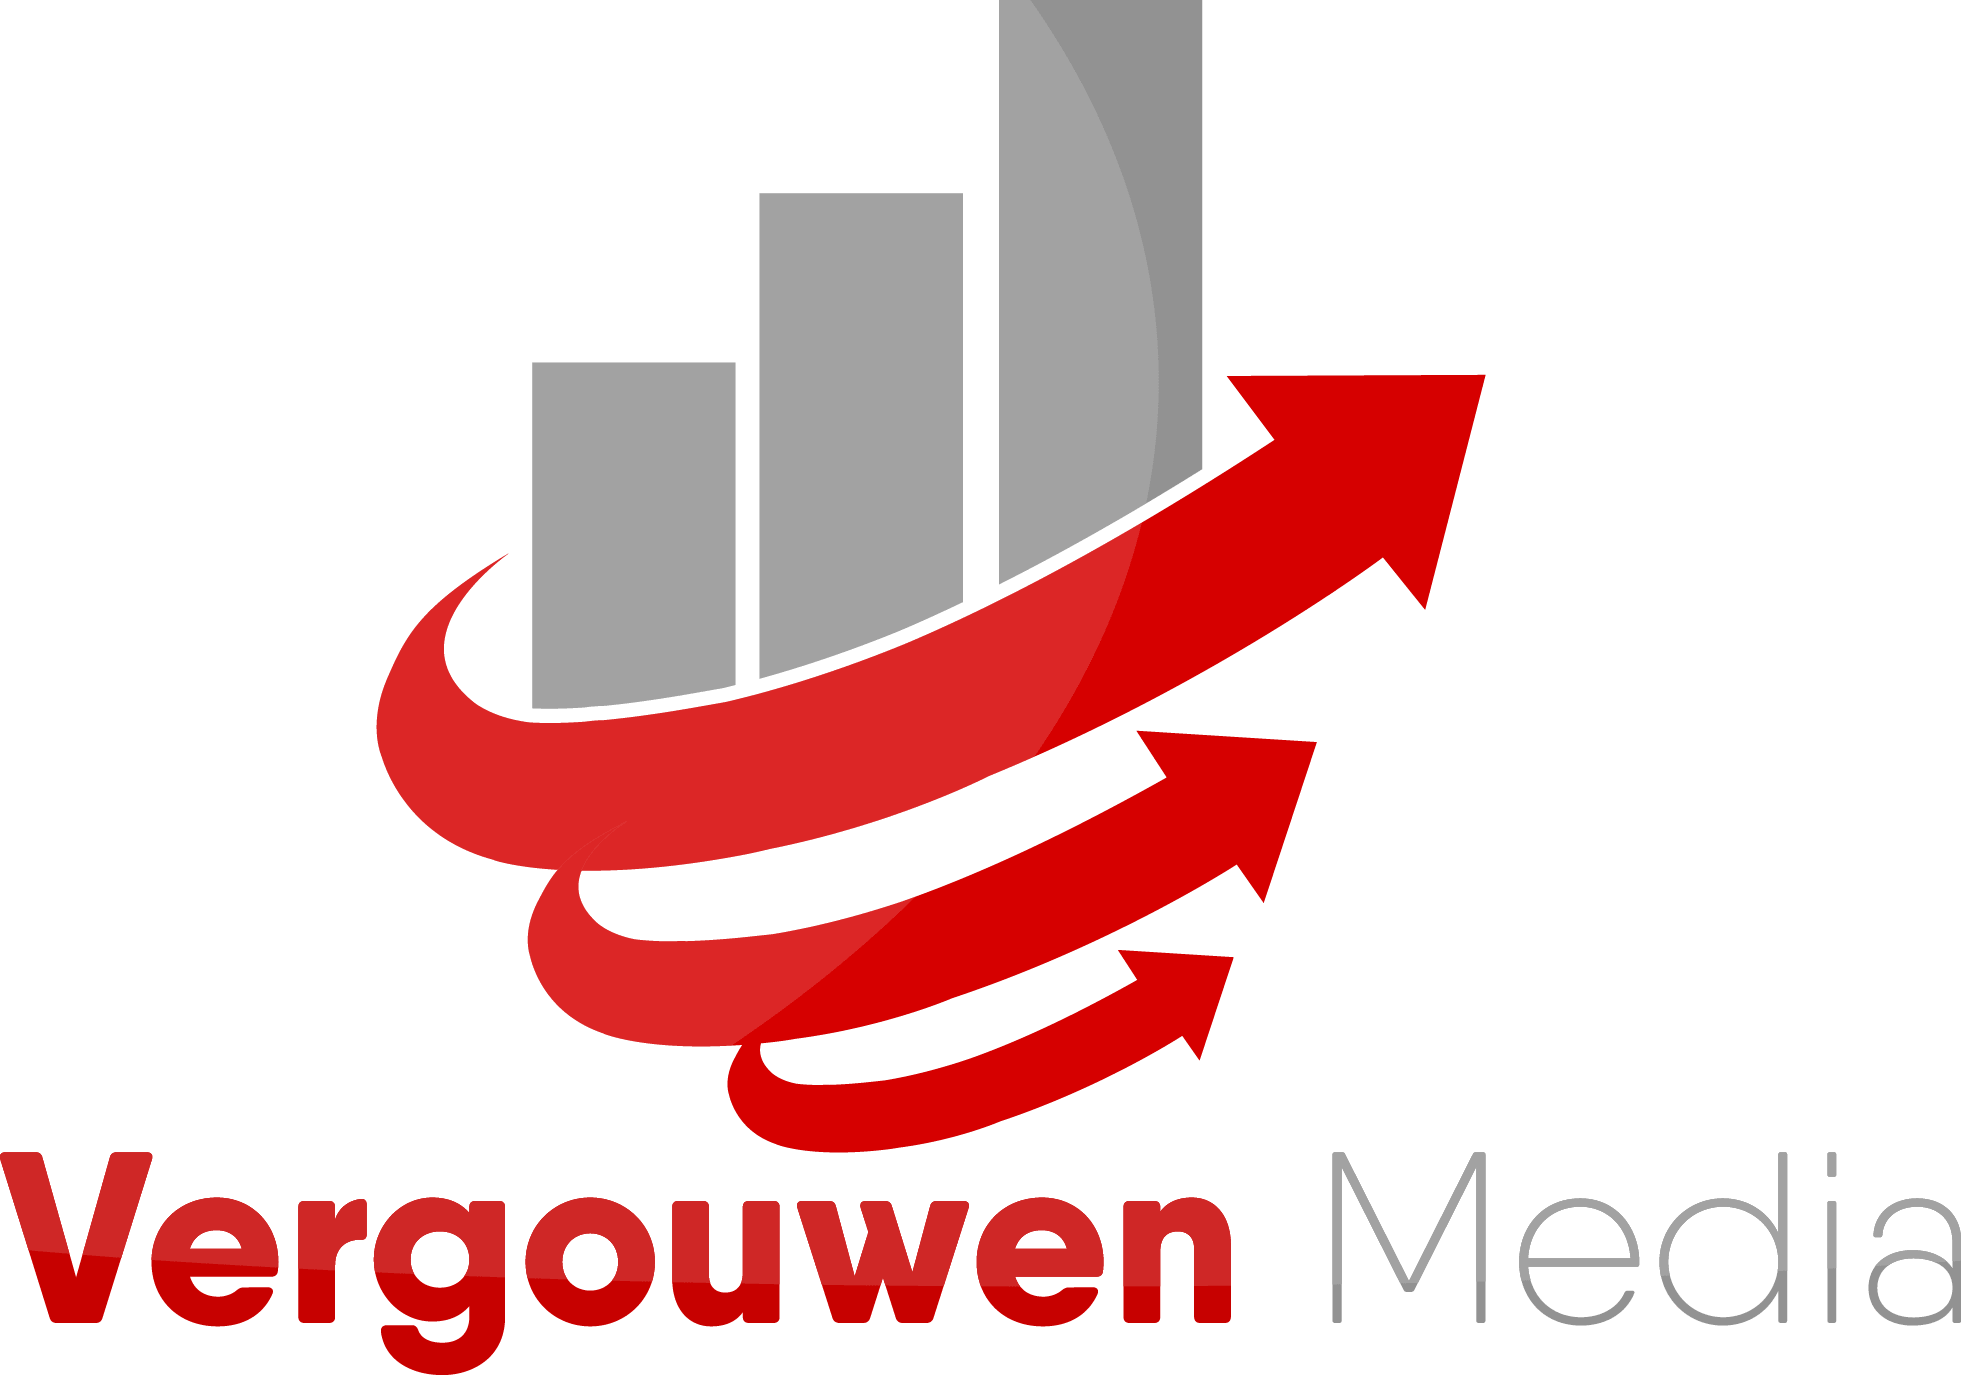 Vergouwen Media Logo